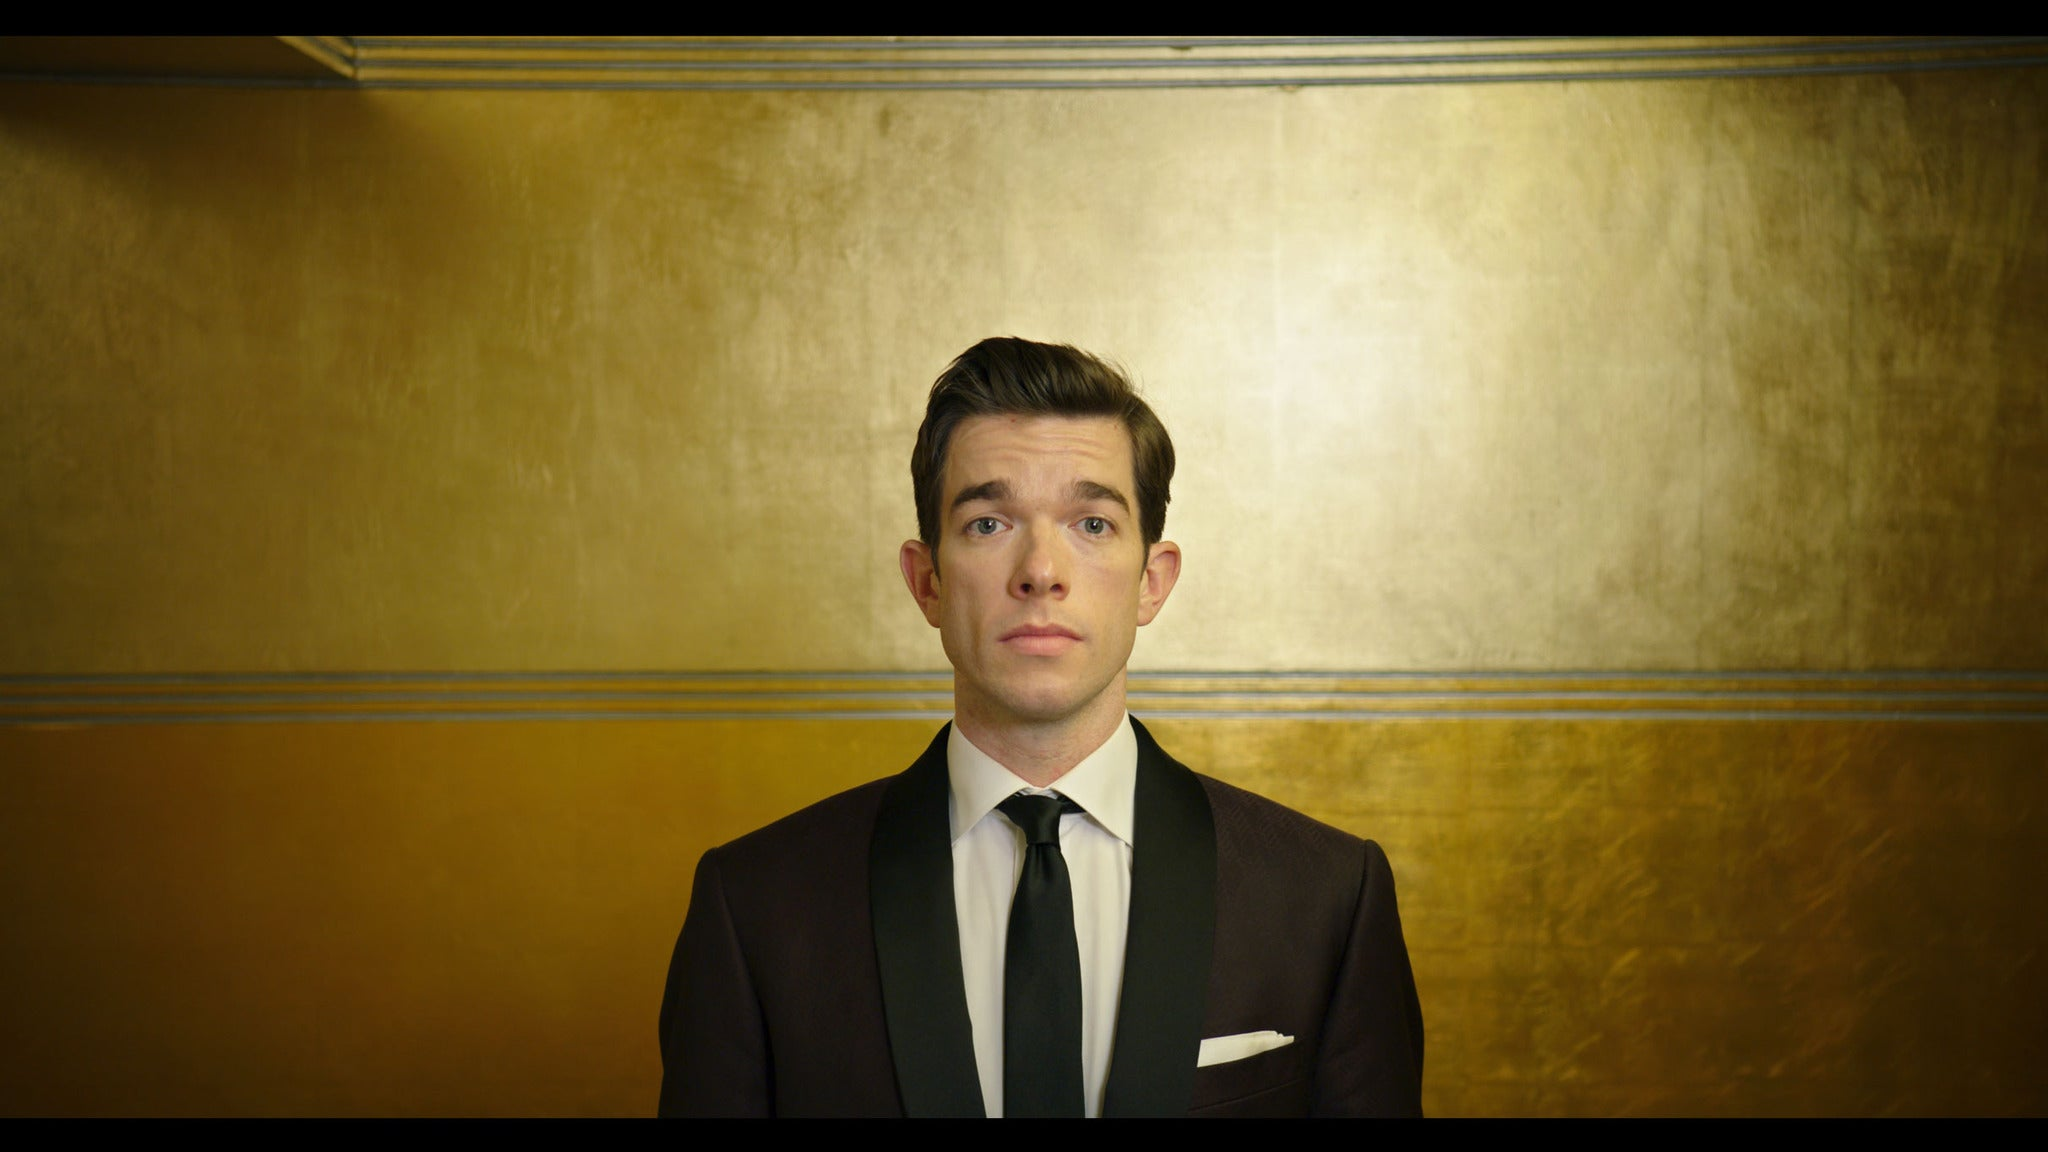 John Mulaney at Ryan Center